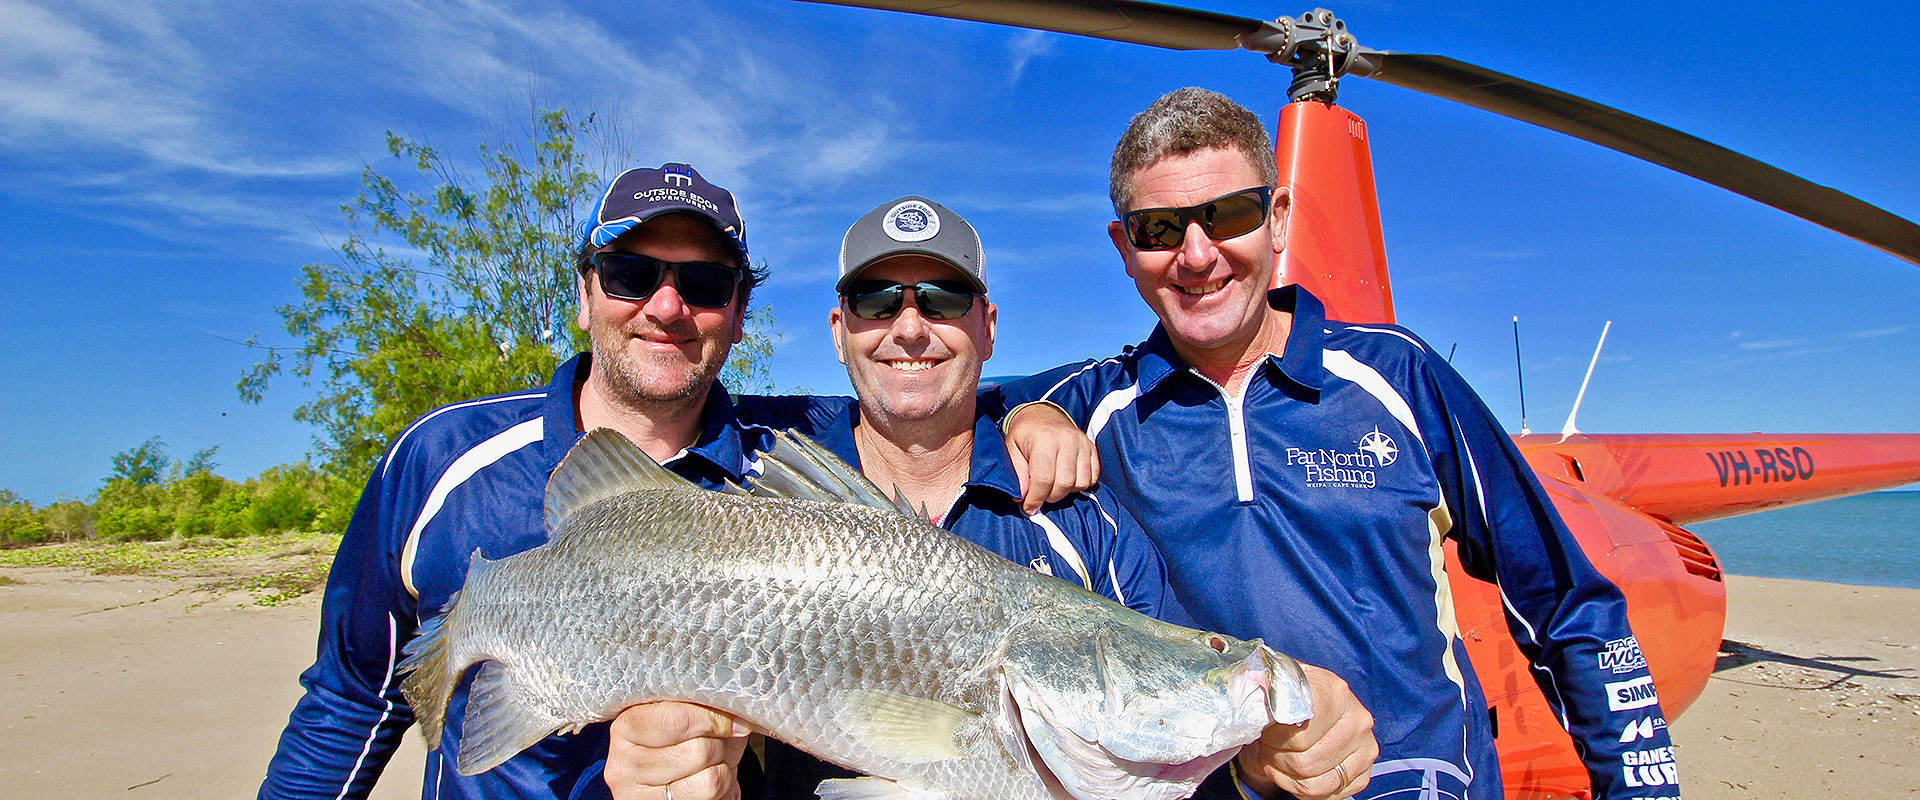 WEIPA FISHING <span>CHARTER WITH US</span>